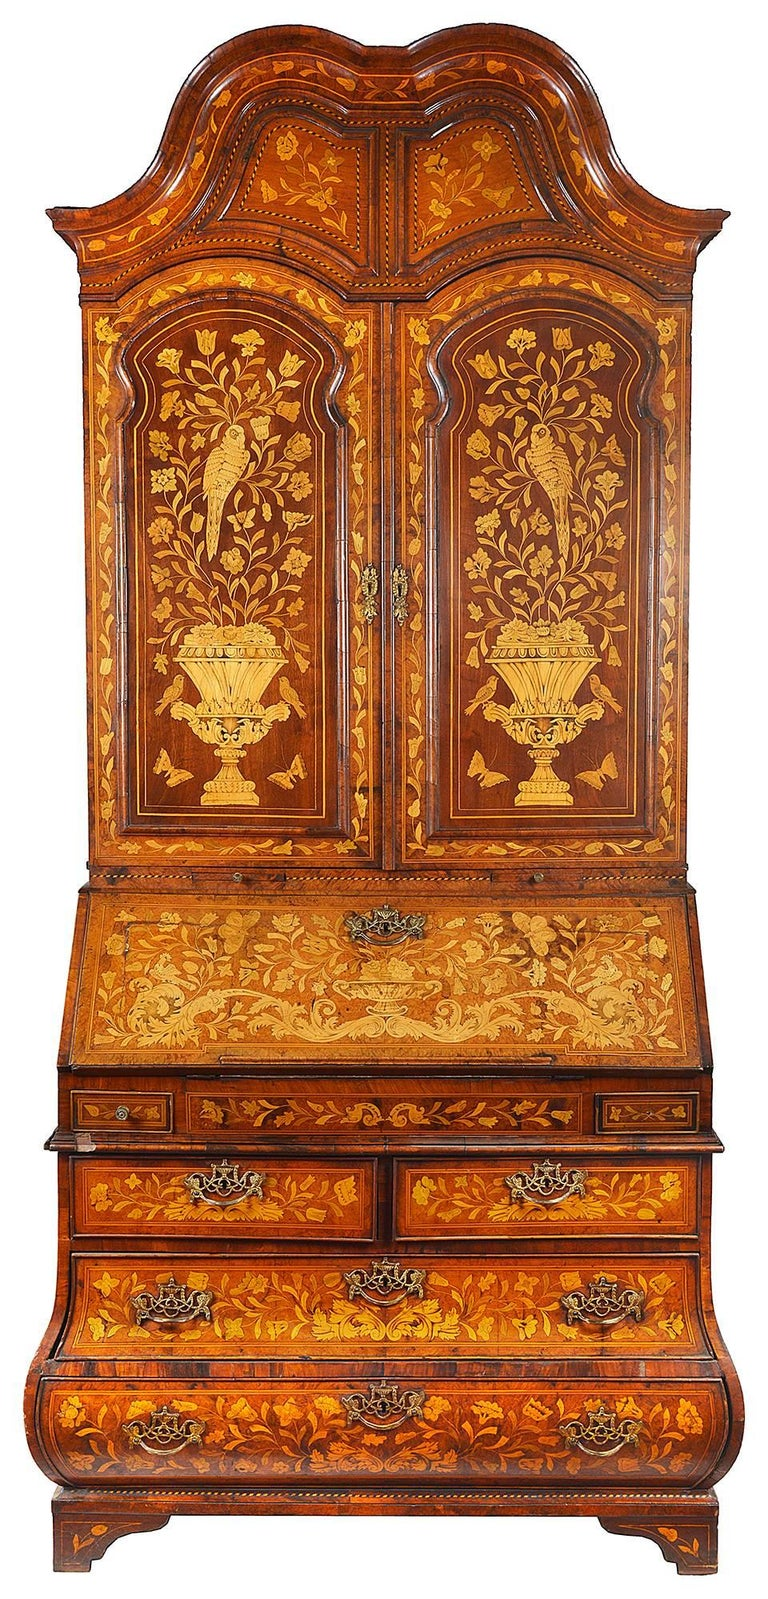 A very good quality 18th century Dutch marquetry inlaid bureau bookcase. Having a double dome top cornice, two panel doors, a fall front and bombe shaped base. The wonderfully bold and fine quality inlaid marquetry detail of flowers, birds and